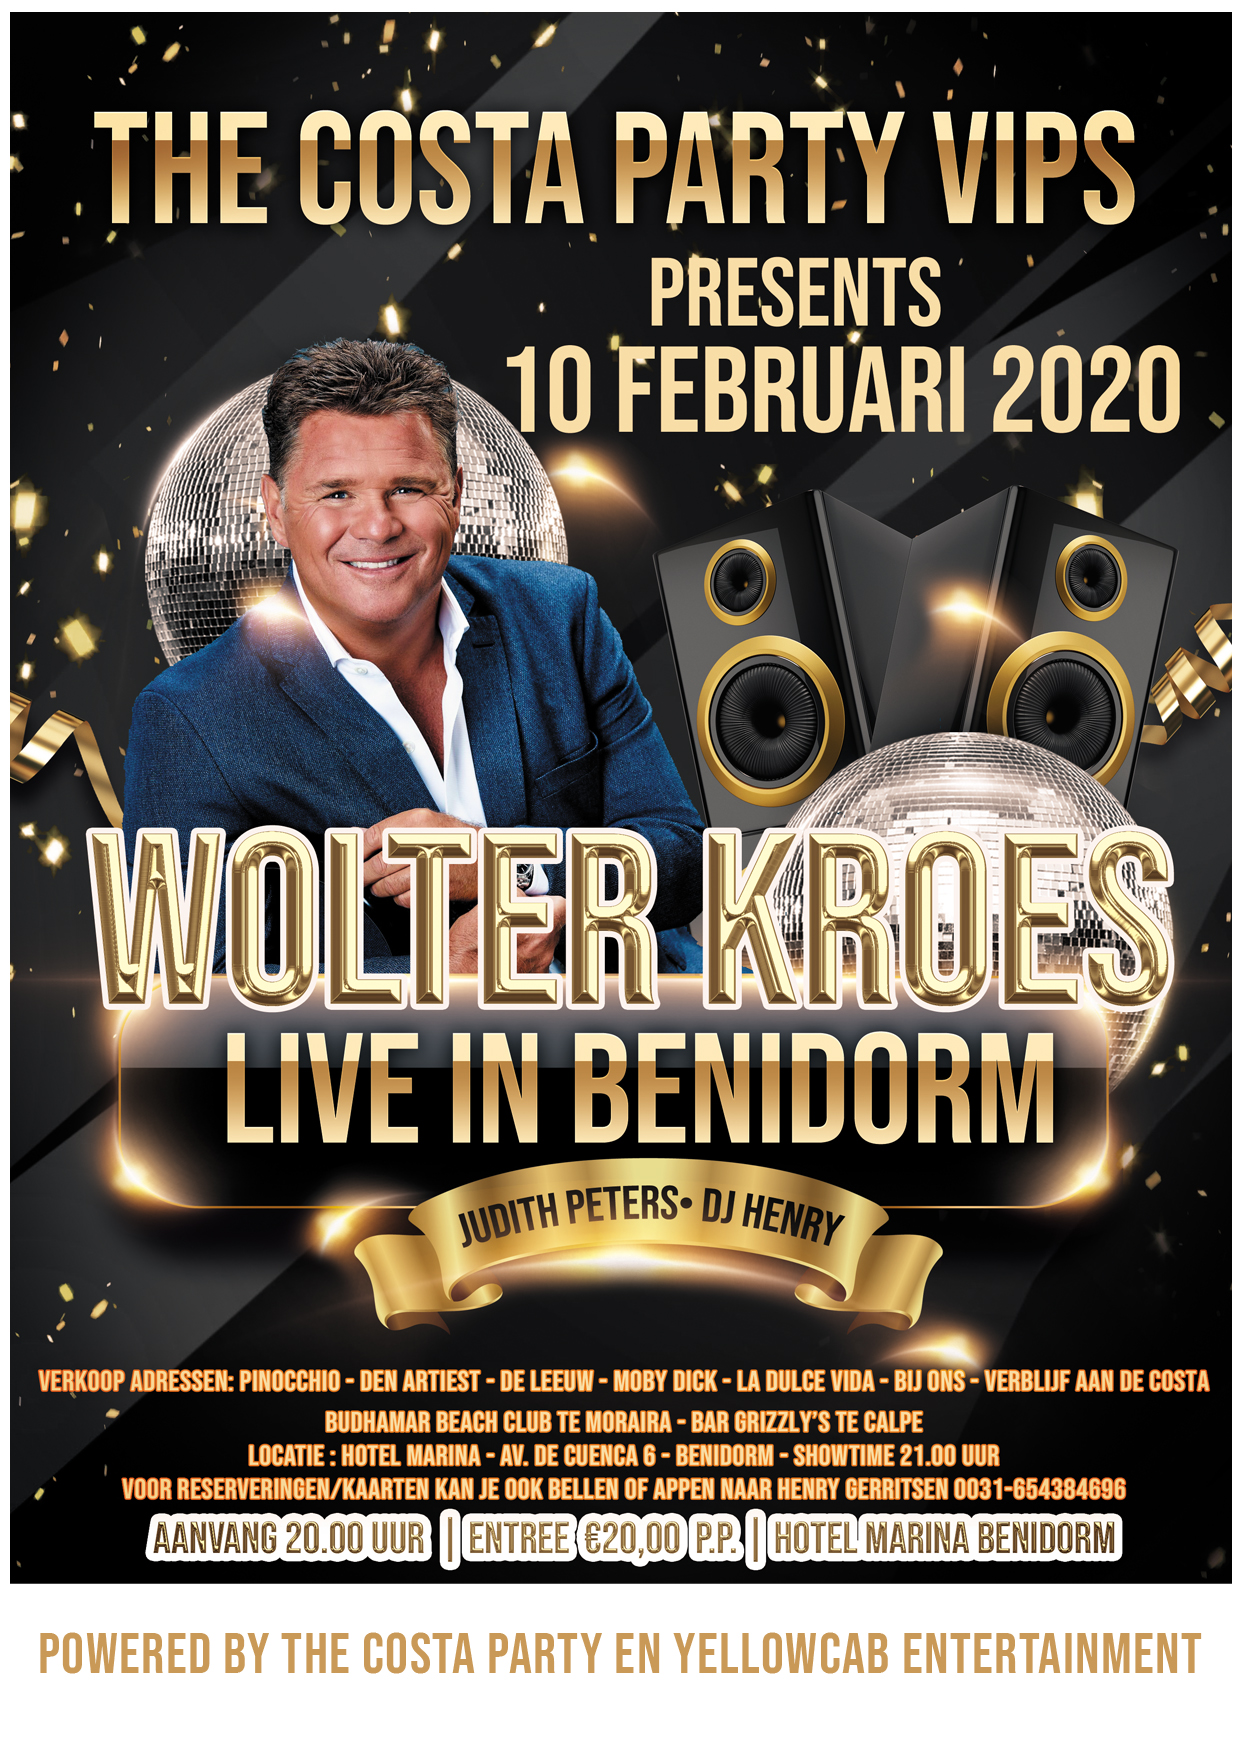 The Costa Party 10 Februari Wolter Kroes live in Benidorm